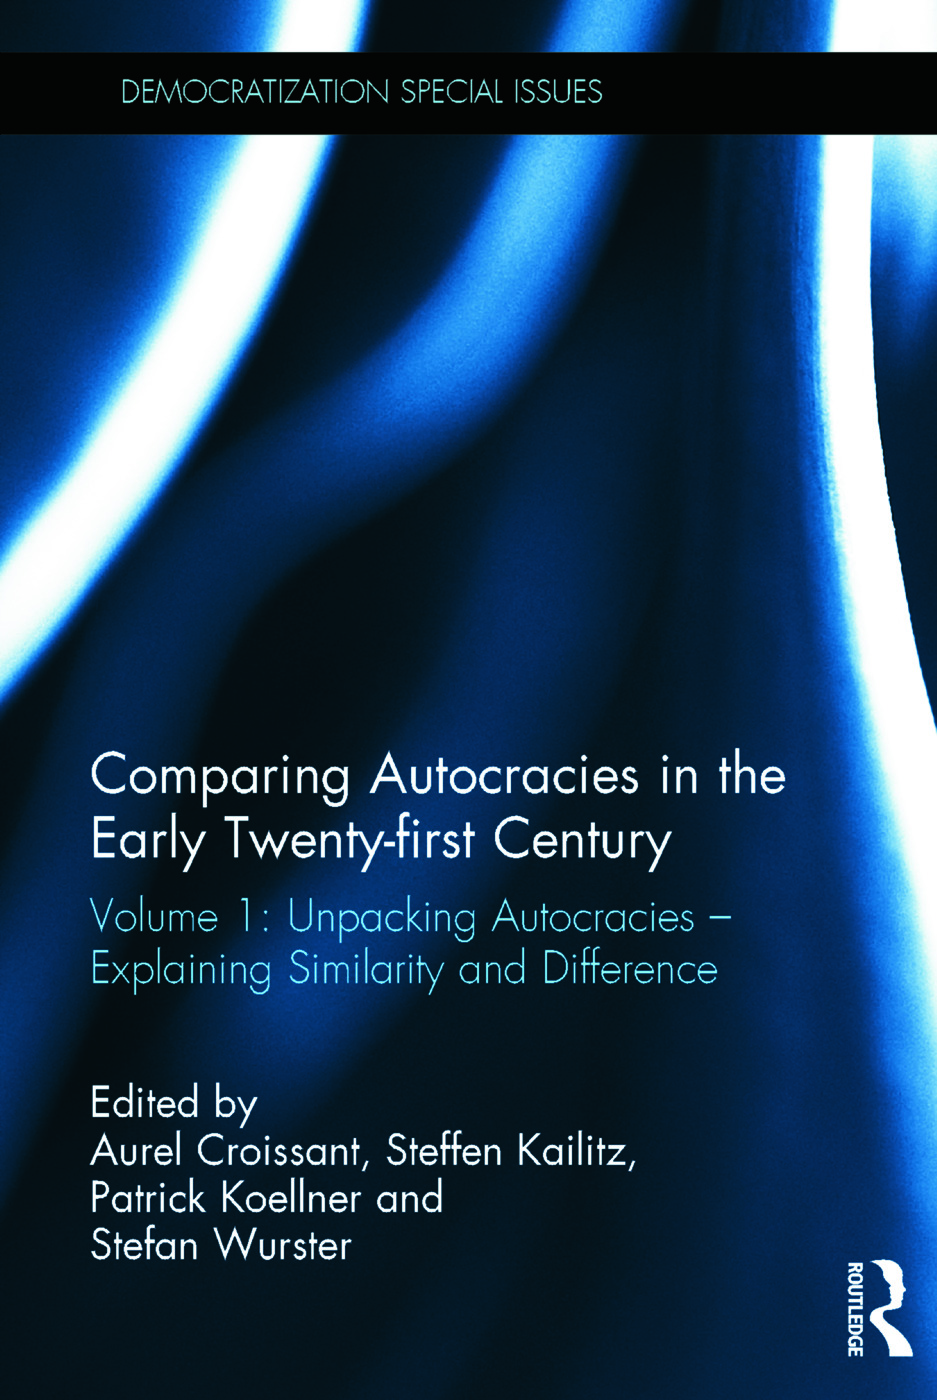 Comparing autocracies in the early Twenty-first Century: Volume 1: Unpacking Autocracies - Explaining Similarity and Difference book cover